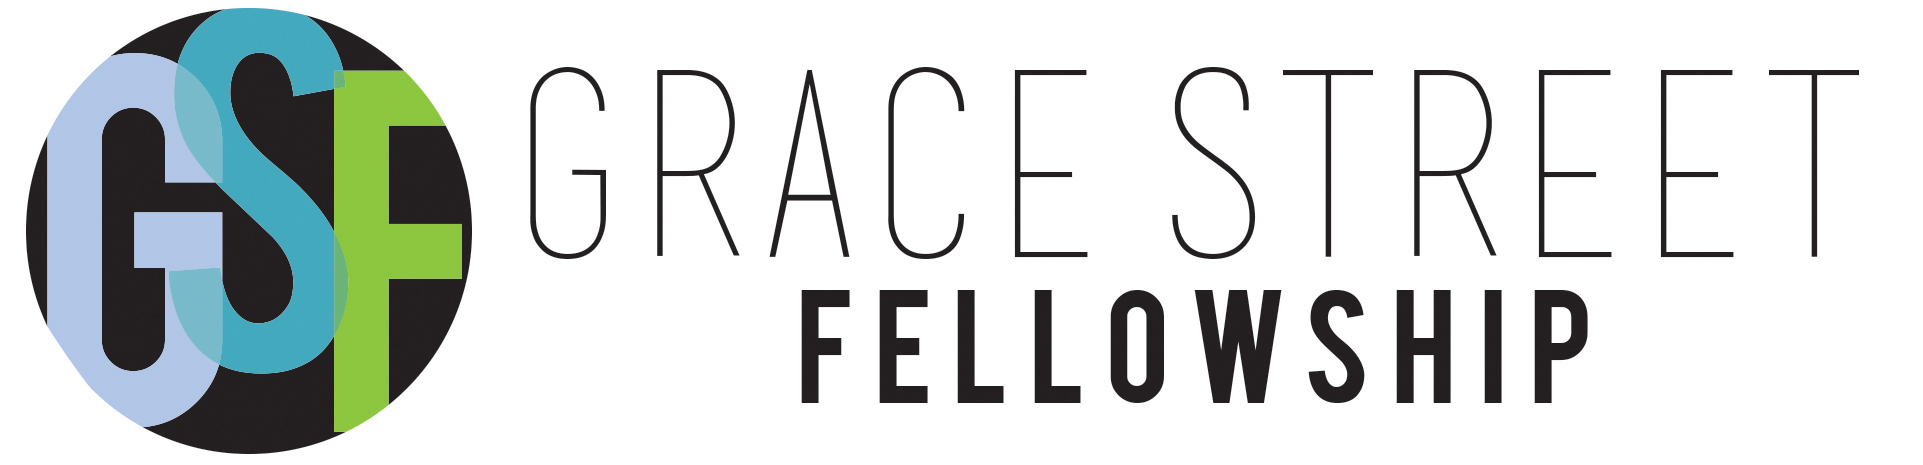 Grace Street Fellowship